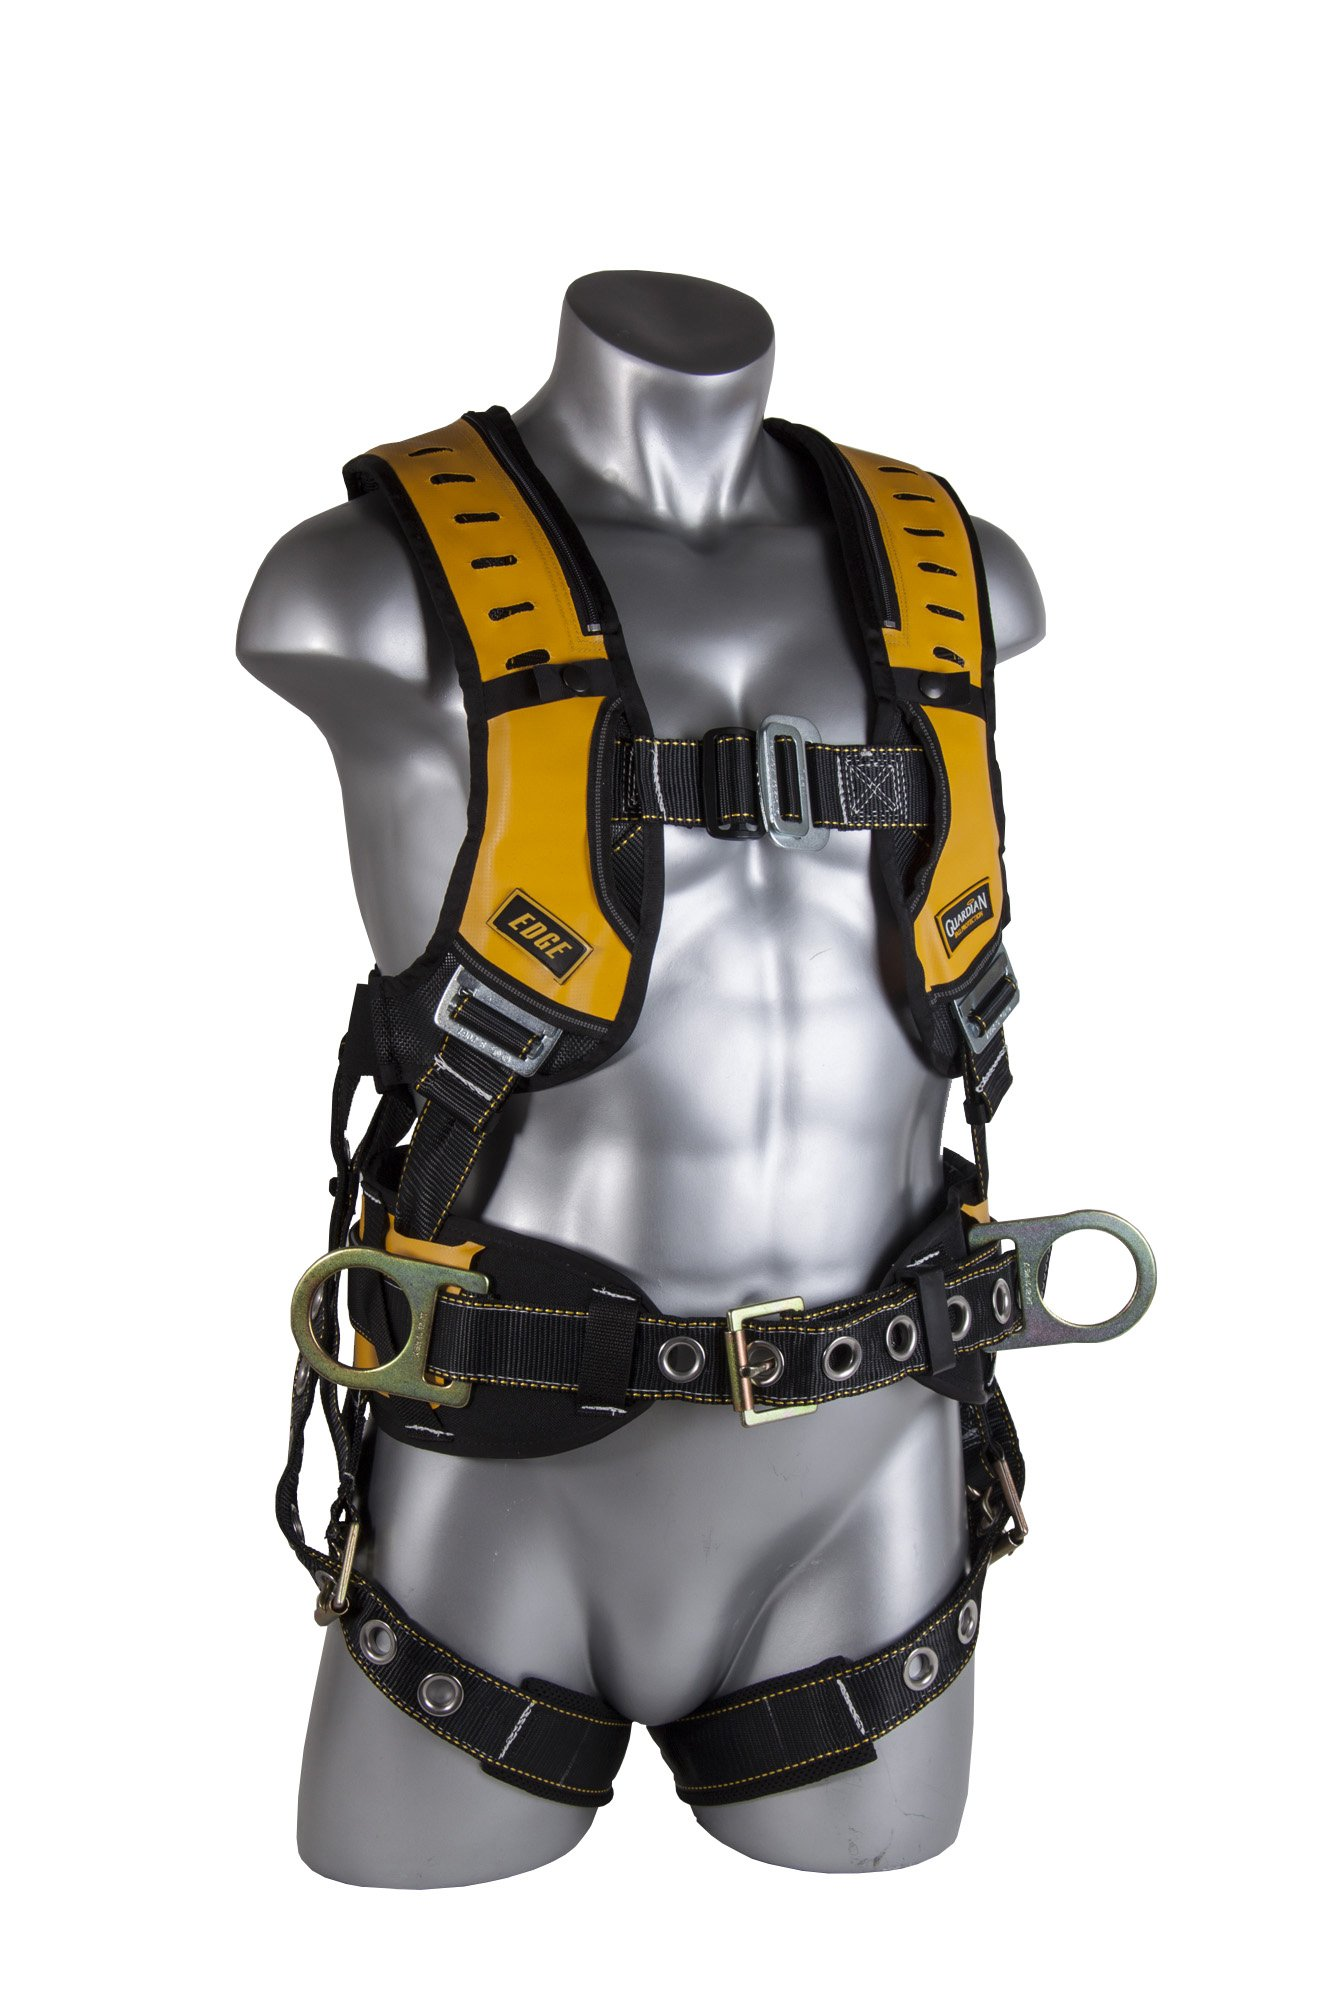 Guardian Fall Protection 193061 Construction Premium Edge Harness with Pass-Thru Chest Buckle, Waist Tounge Buckle and Leg Tounge Buckles, M-XLarge